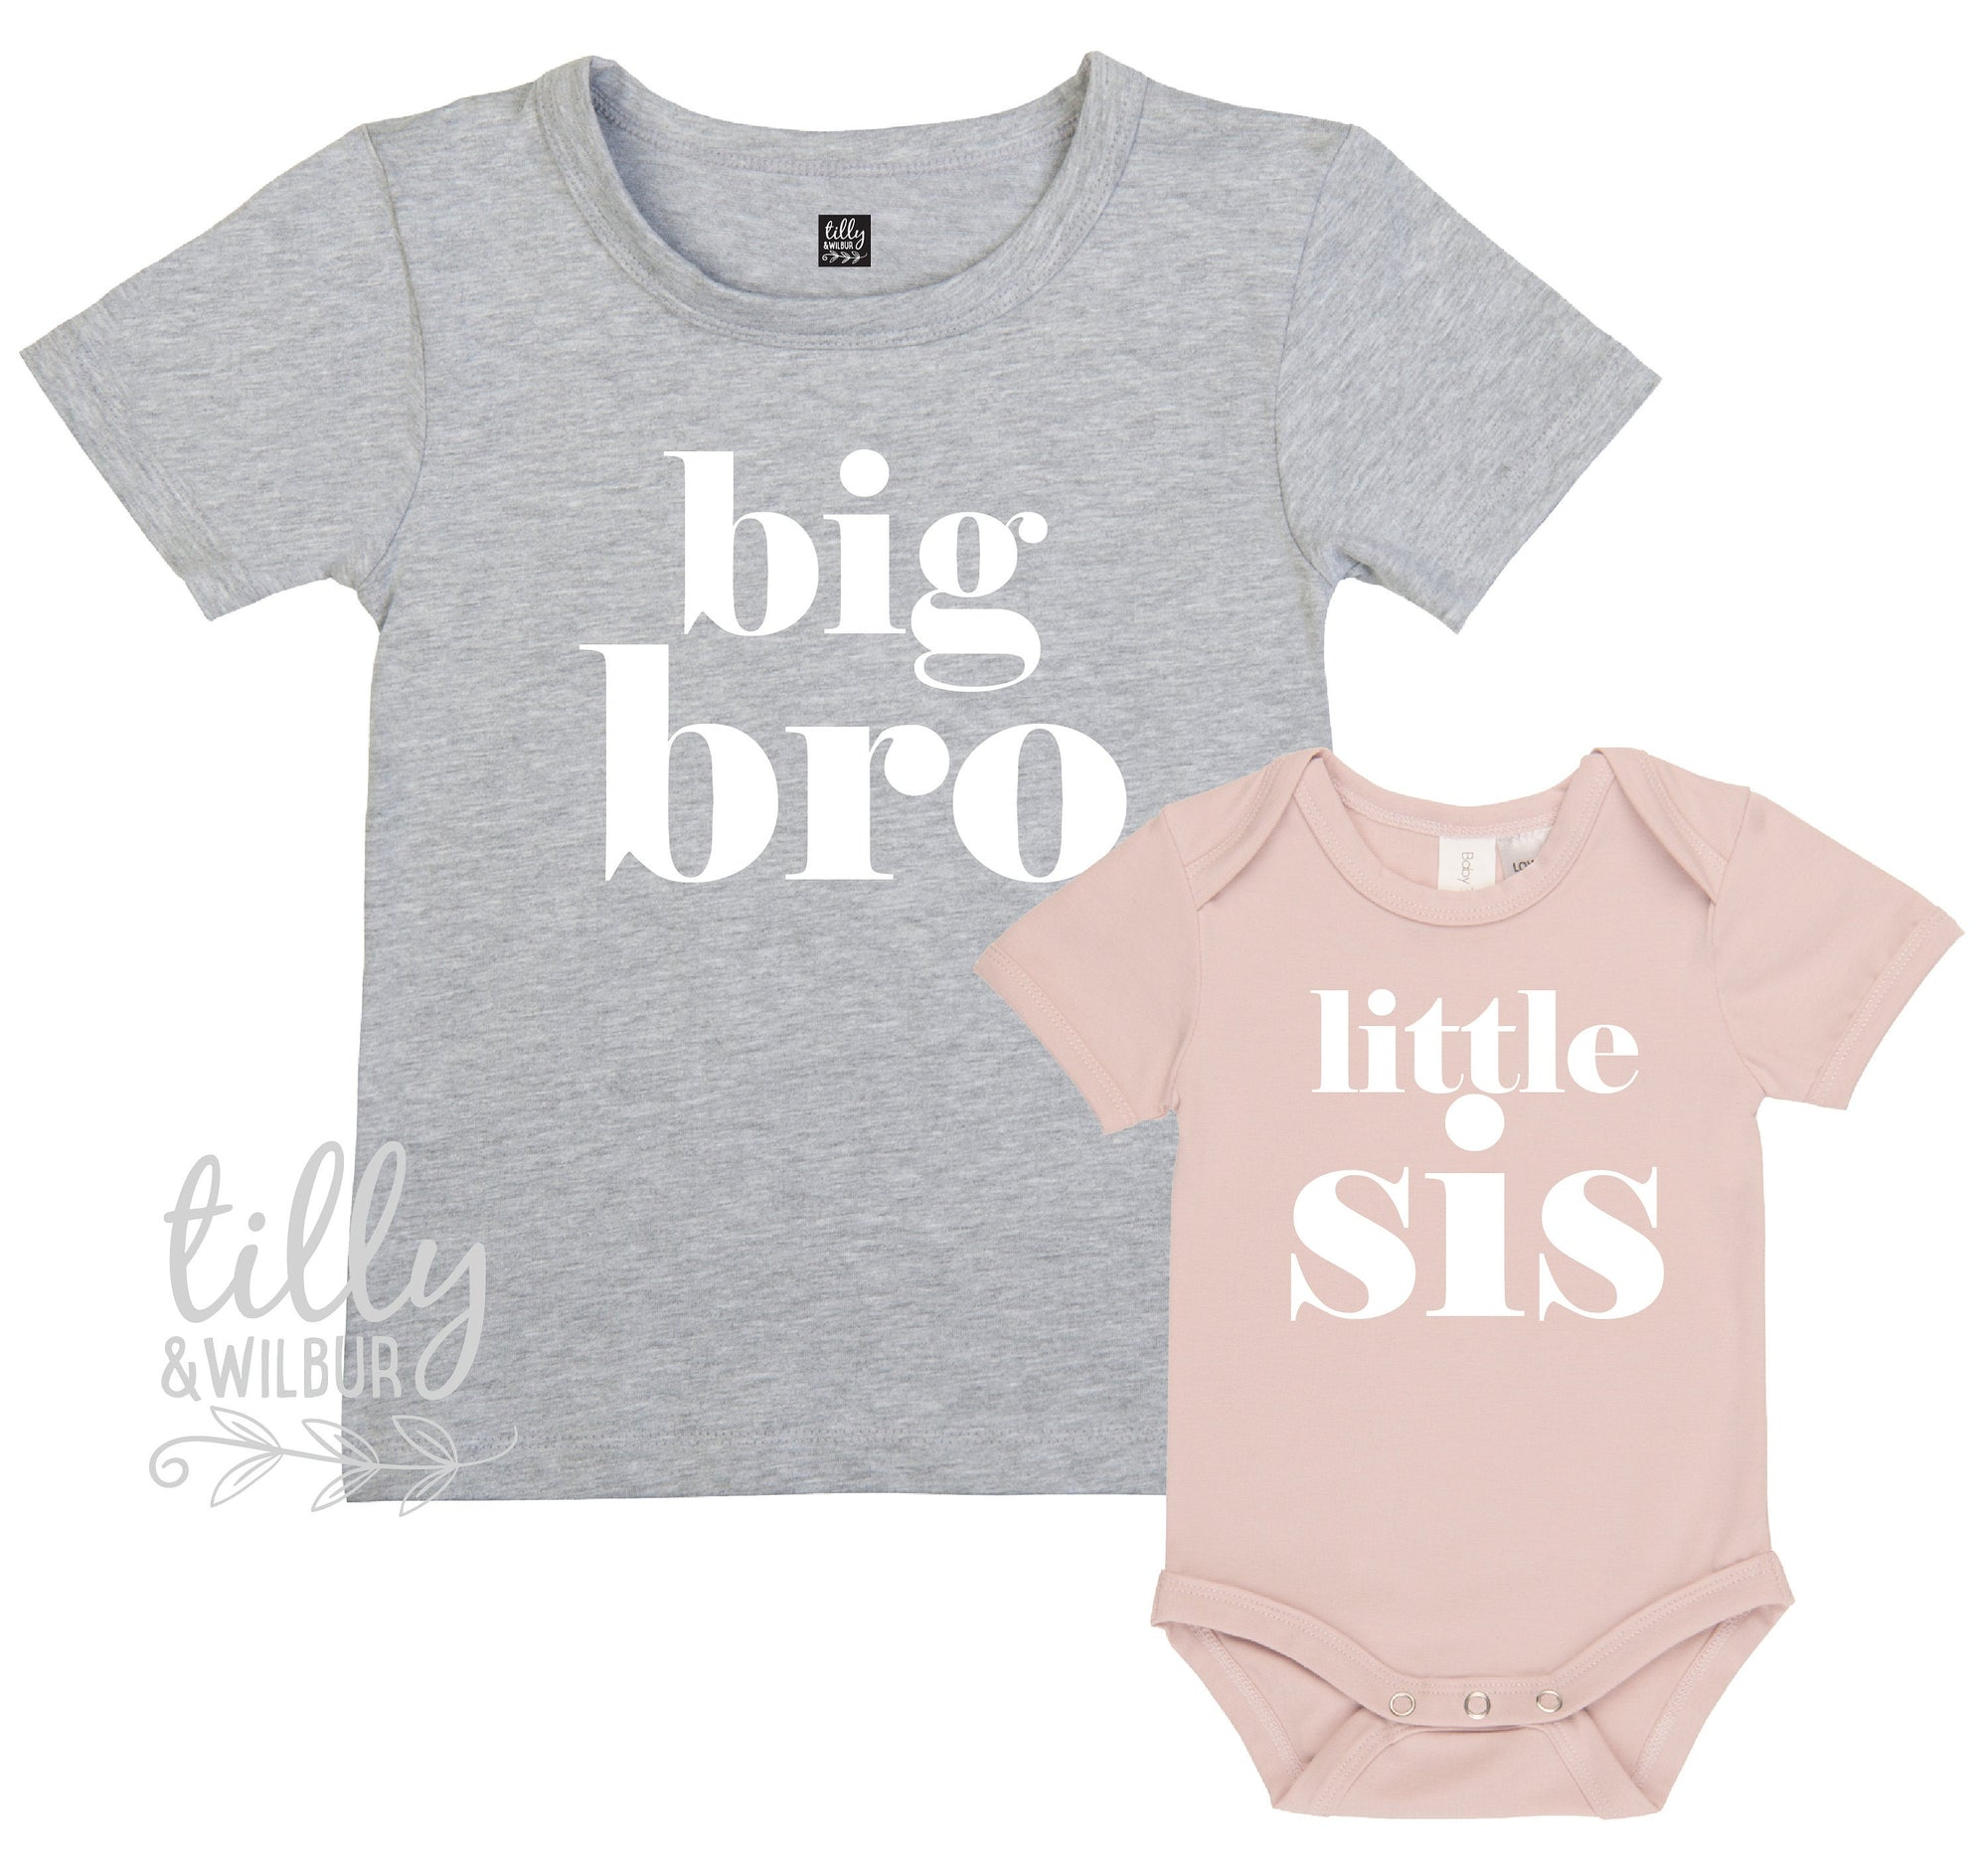 Big Bro Little Sis Set, Matching Sister Brother Outfits, Matchy Matchy Sibling T-Shirts, Big Sister Shirt, Little Brother Bodysuit, Newborn